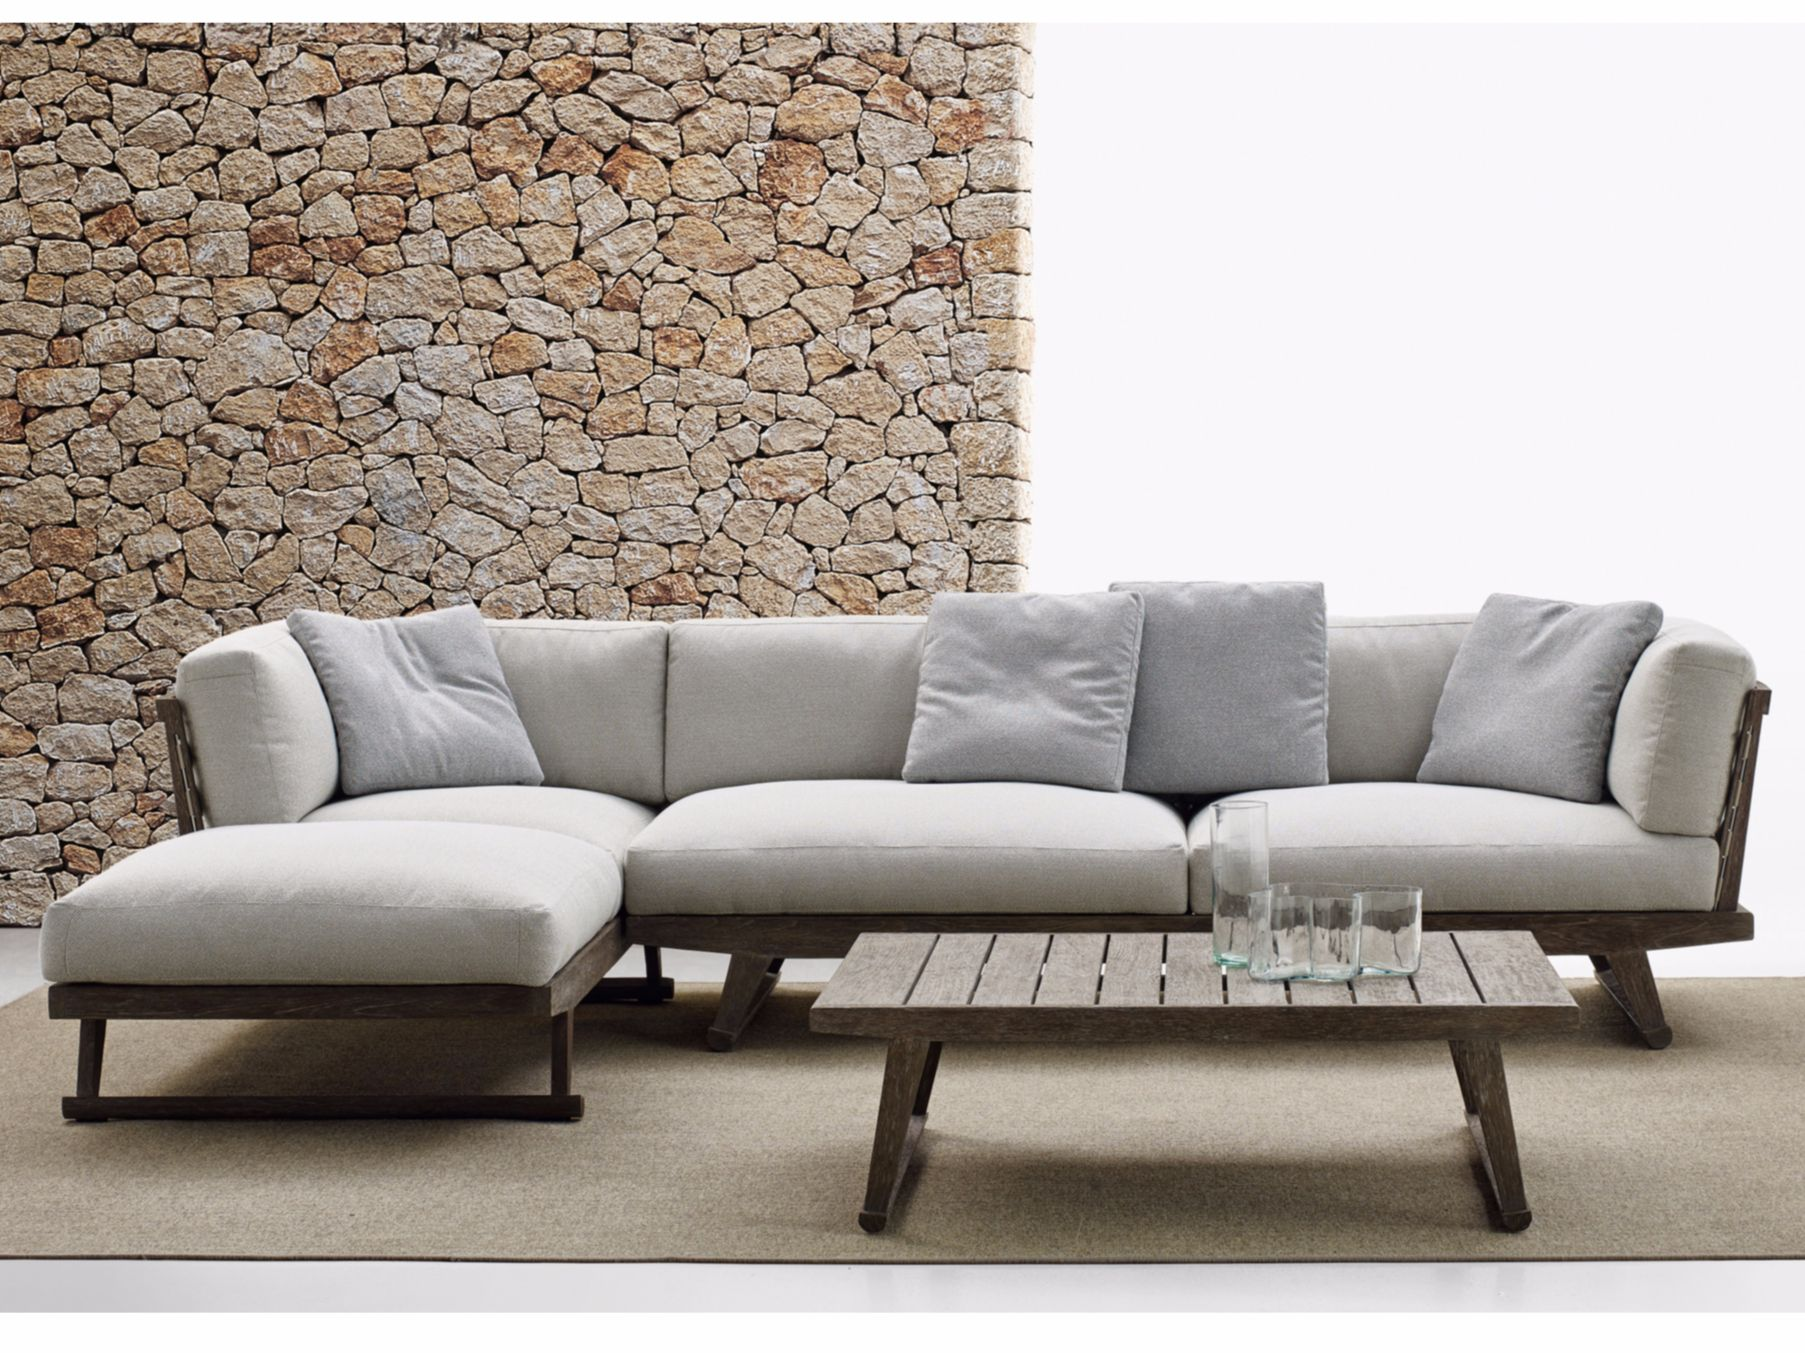 Garden Sofa With Chaise Longue Gio - Sofa With Chaise